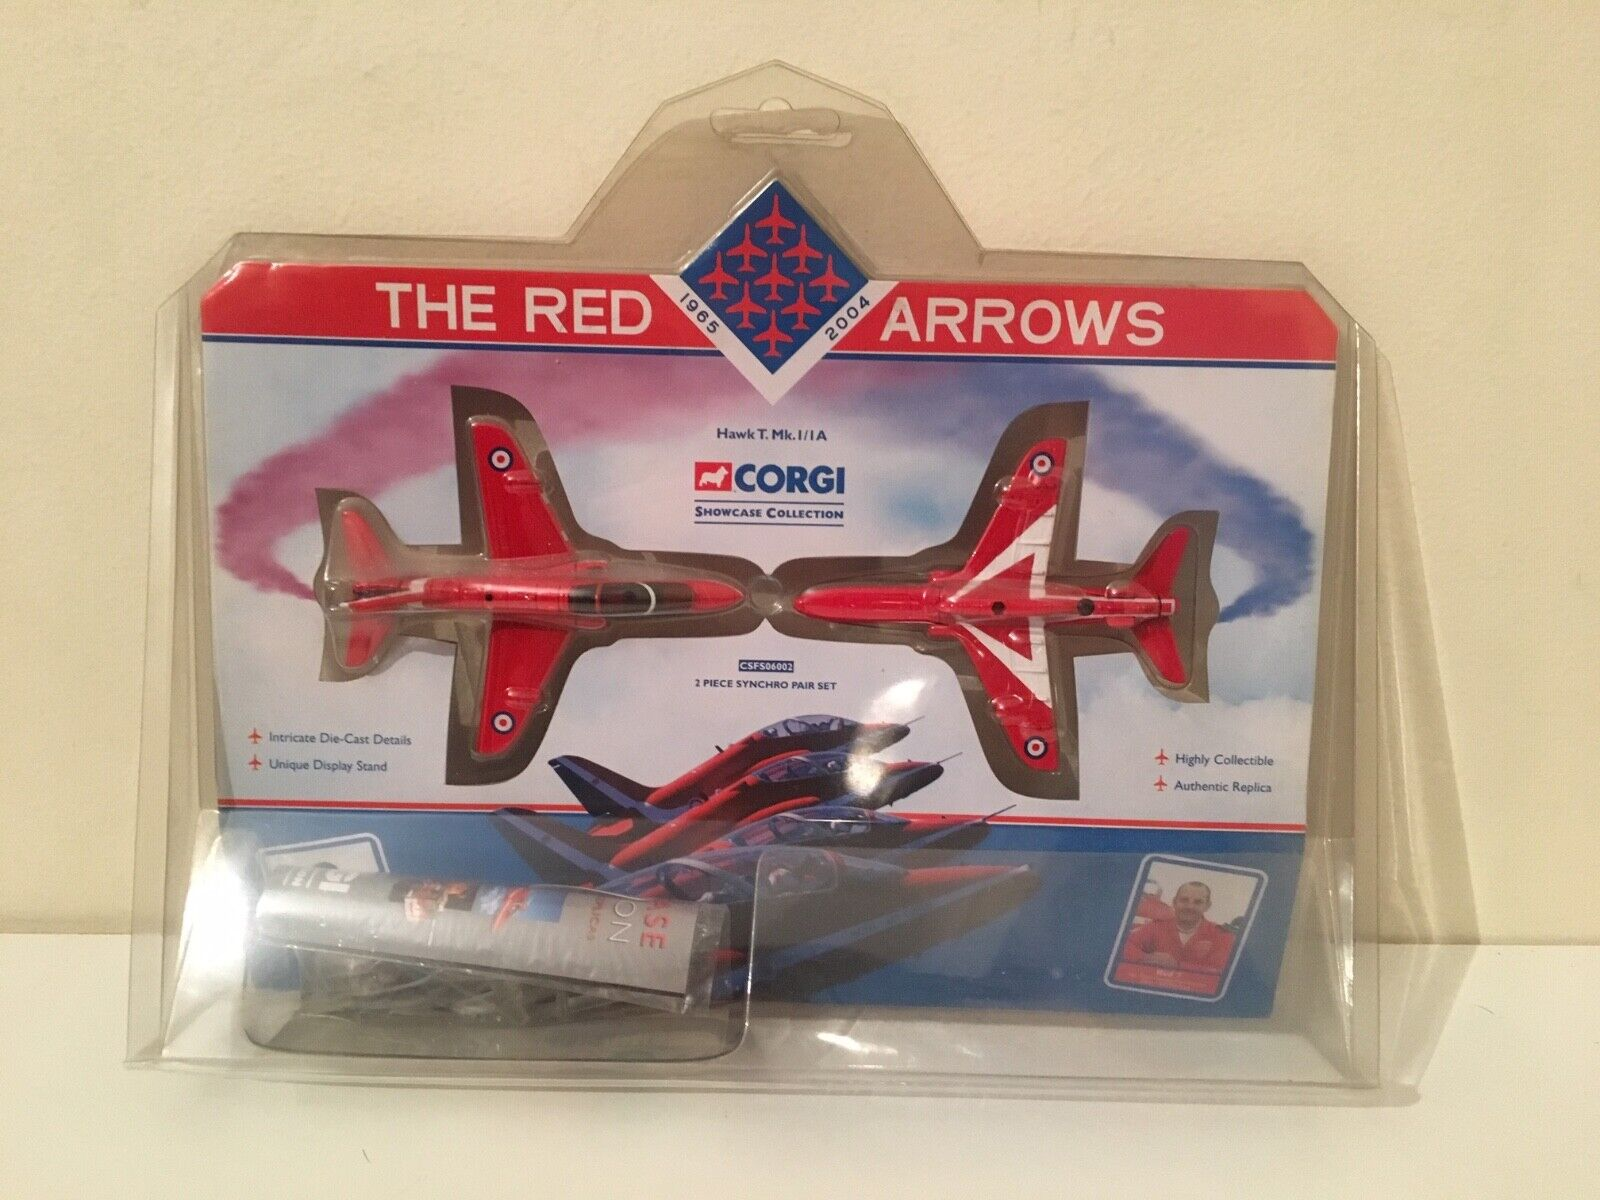 Corgi CSFS06002 - Red Arrows Hawk T.Mk.I   IA - Synchro Set, Showcase Collection